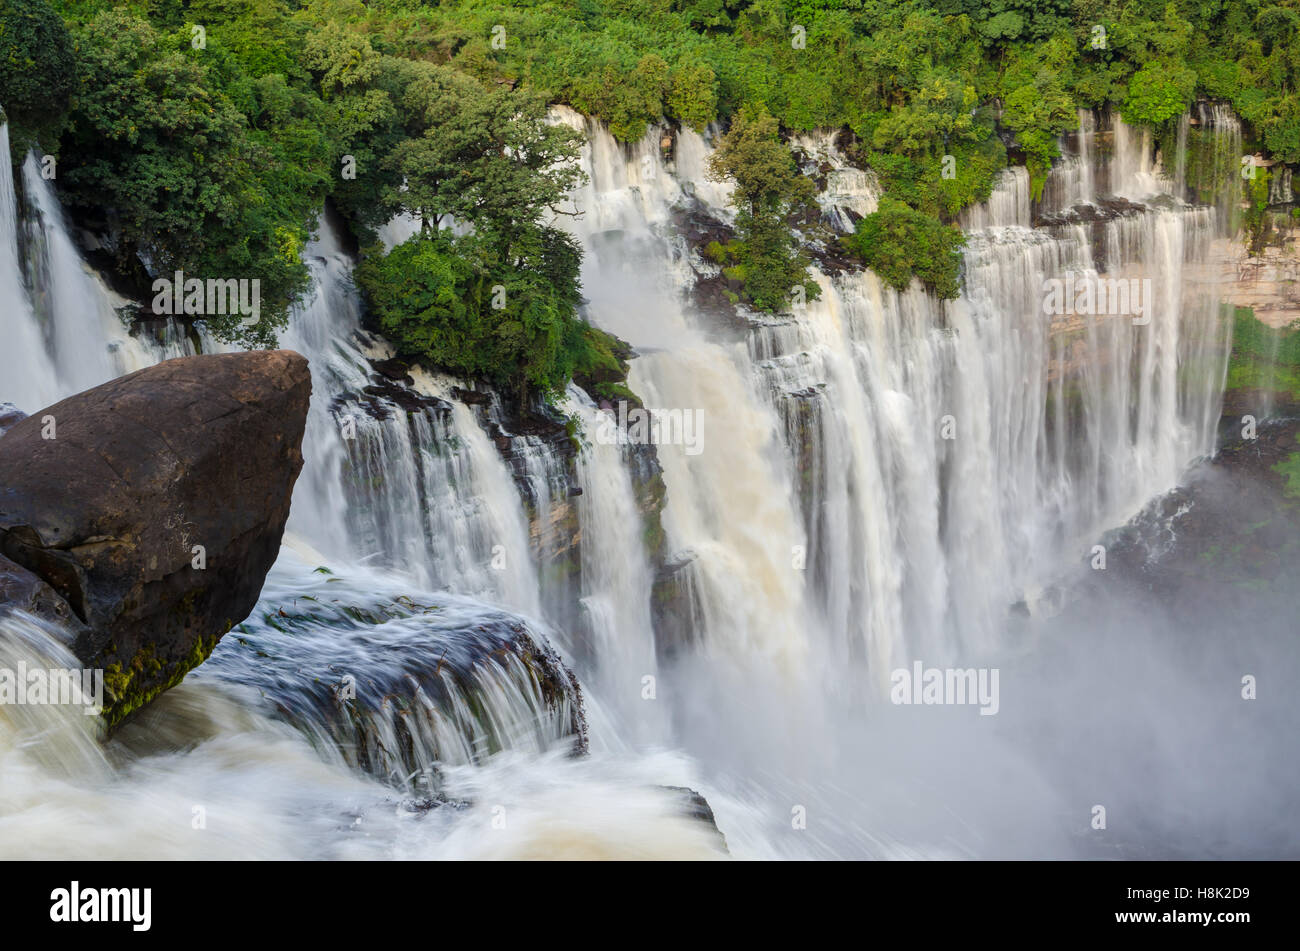 Water Nature Waterfall Tourism Body Of Rainbow Landscapes Werfall Feature Sustaility Cataracts Angola Atmospheric